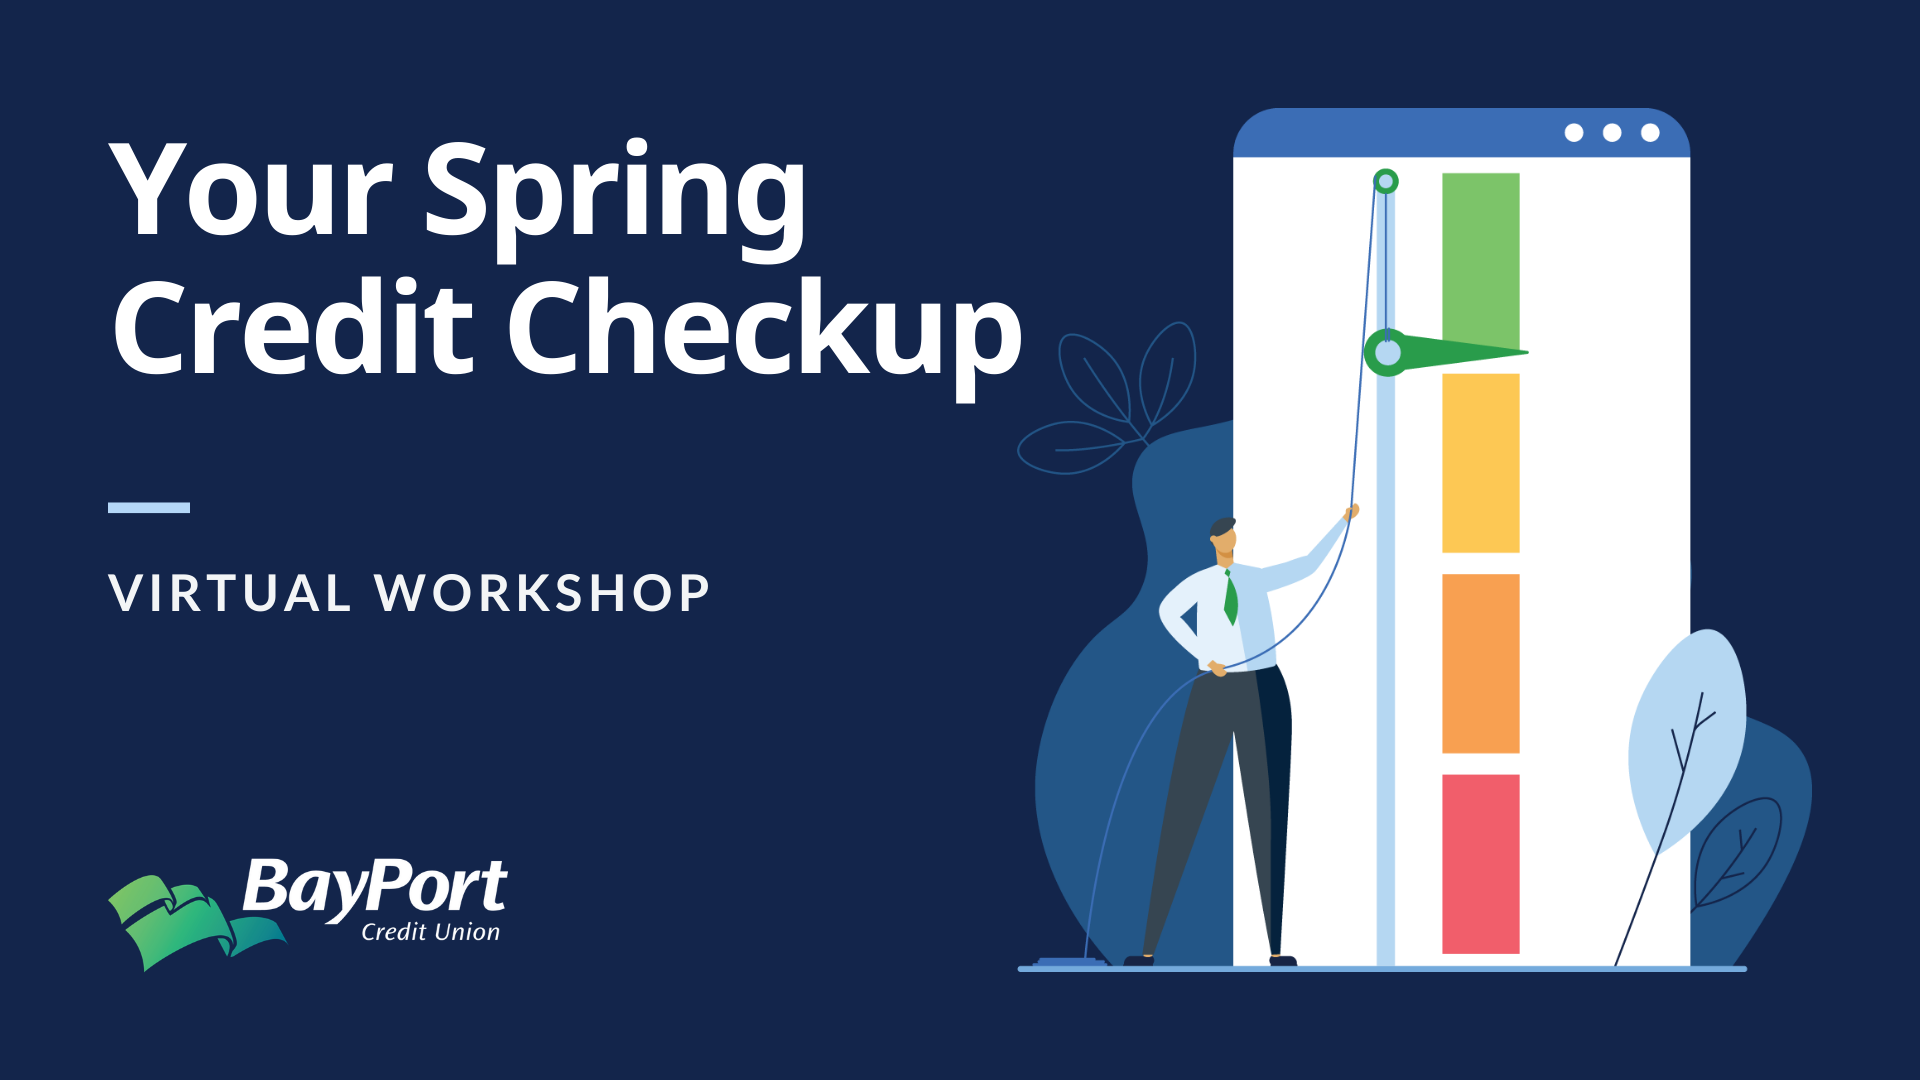 Your Spring Credit Checkup